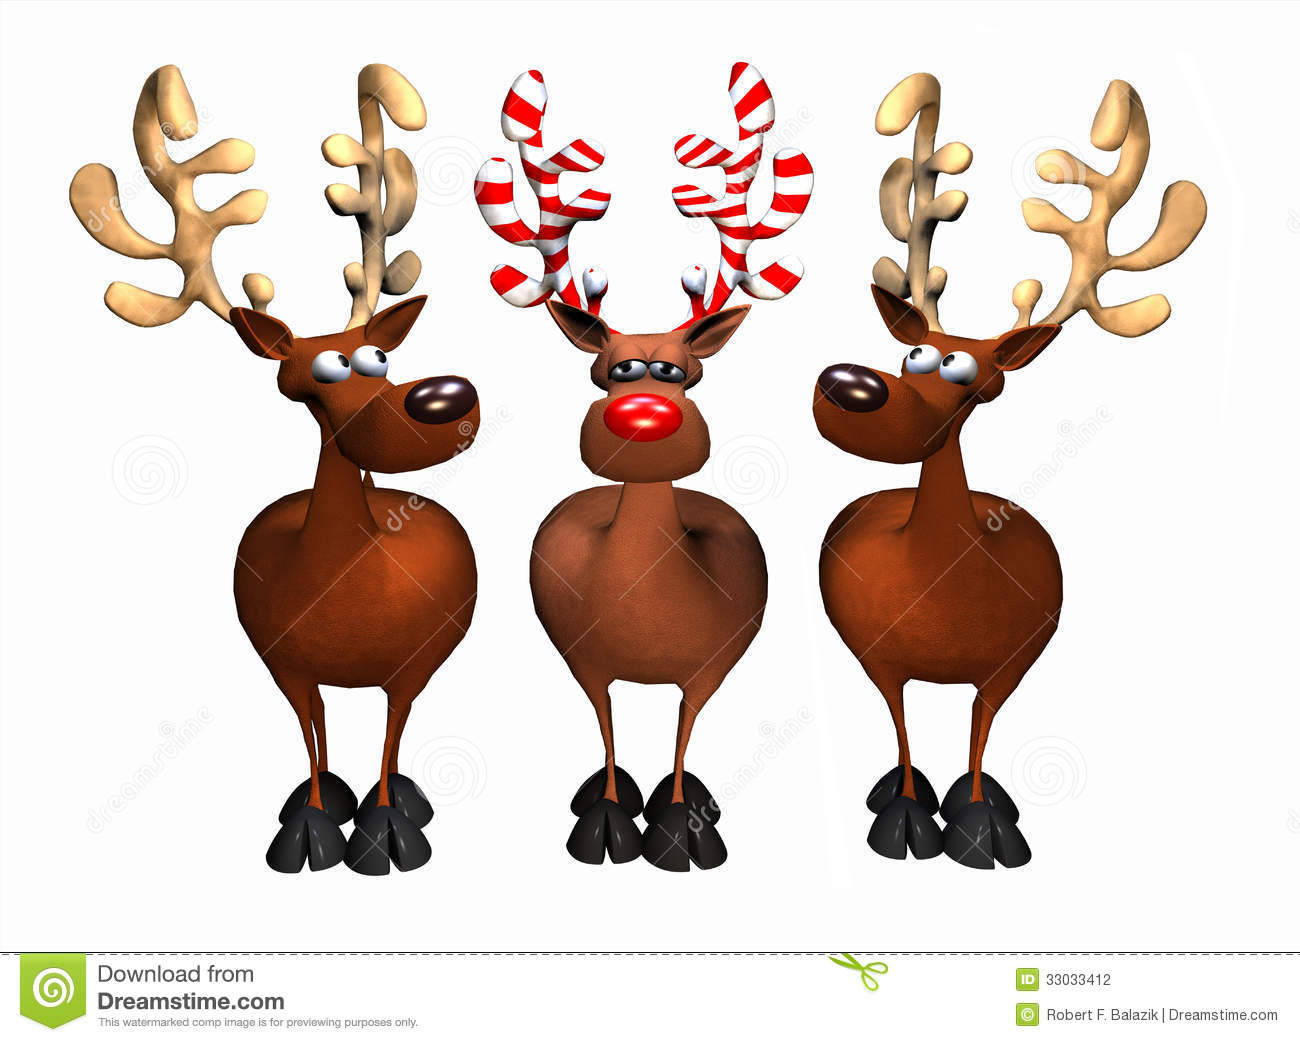 Illustration Depicting Three Reindeer One With Candy Cane Antlers